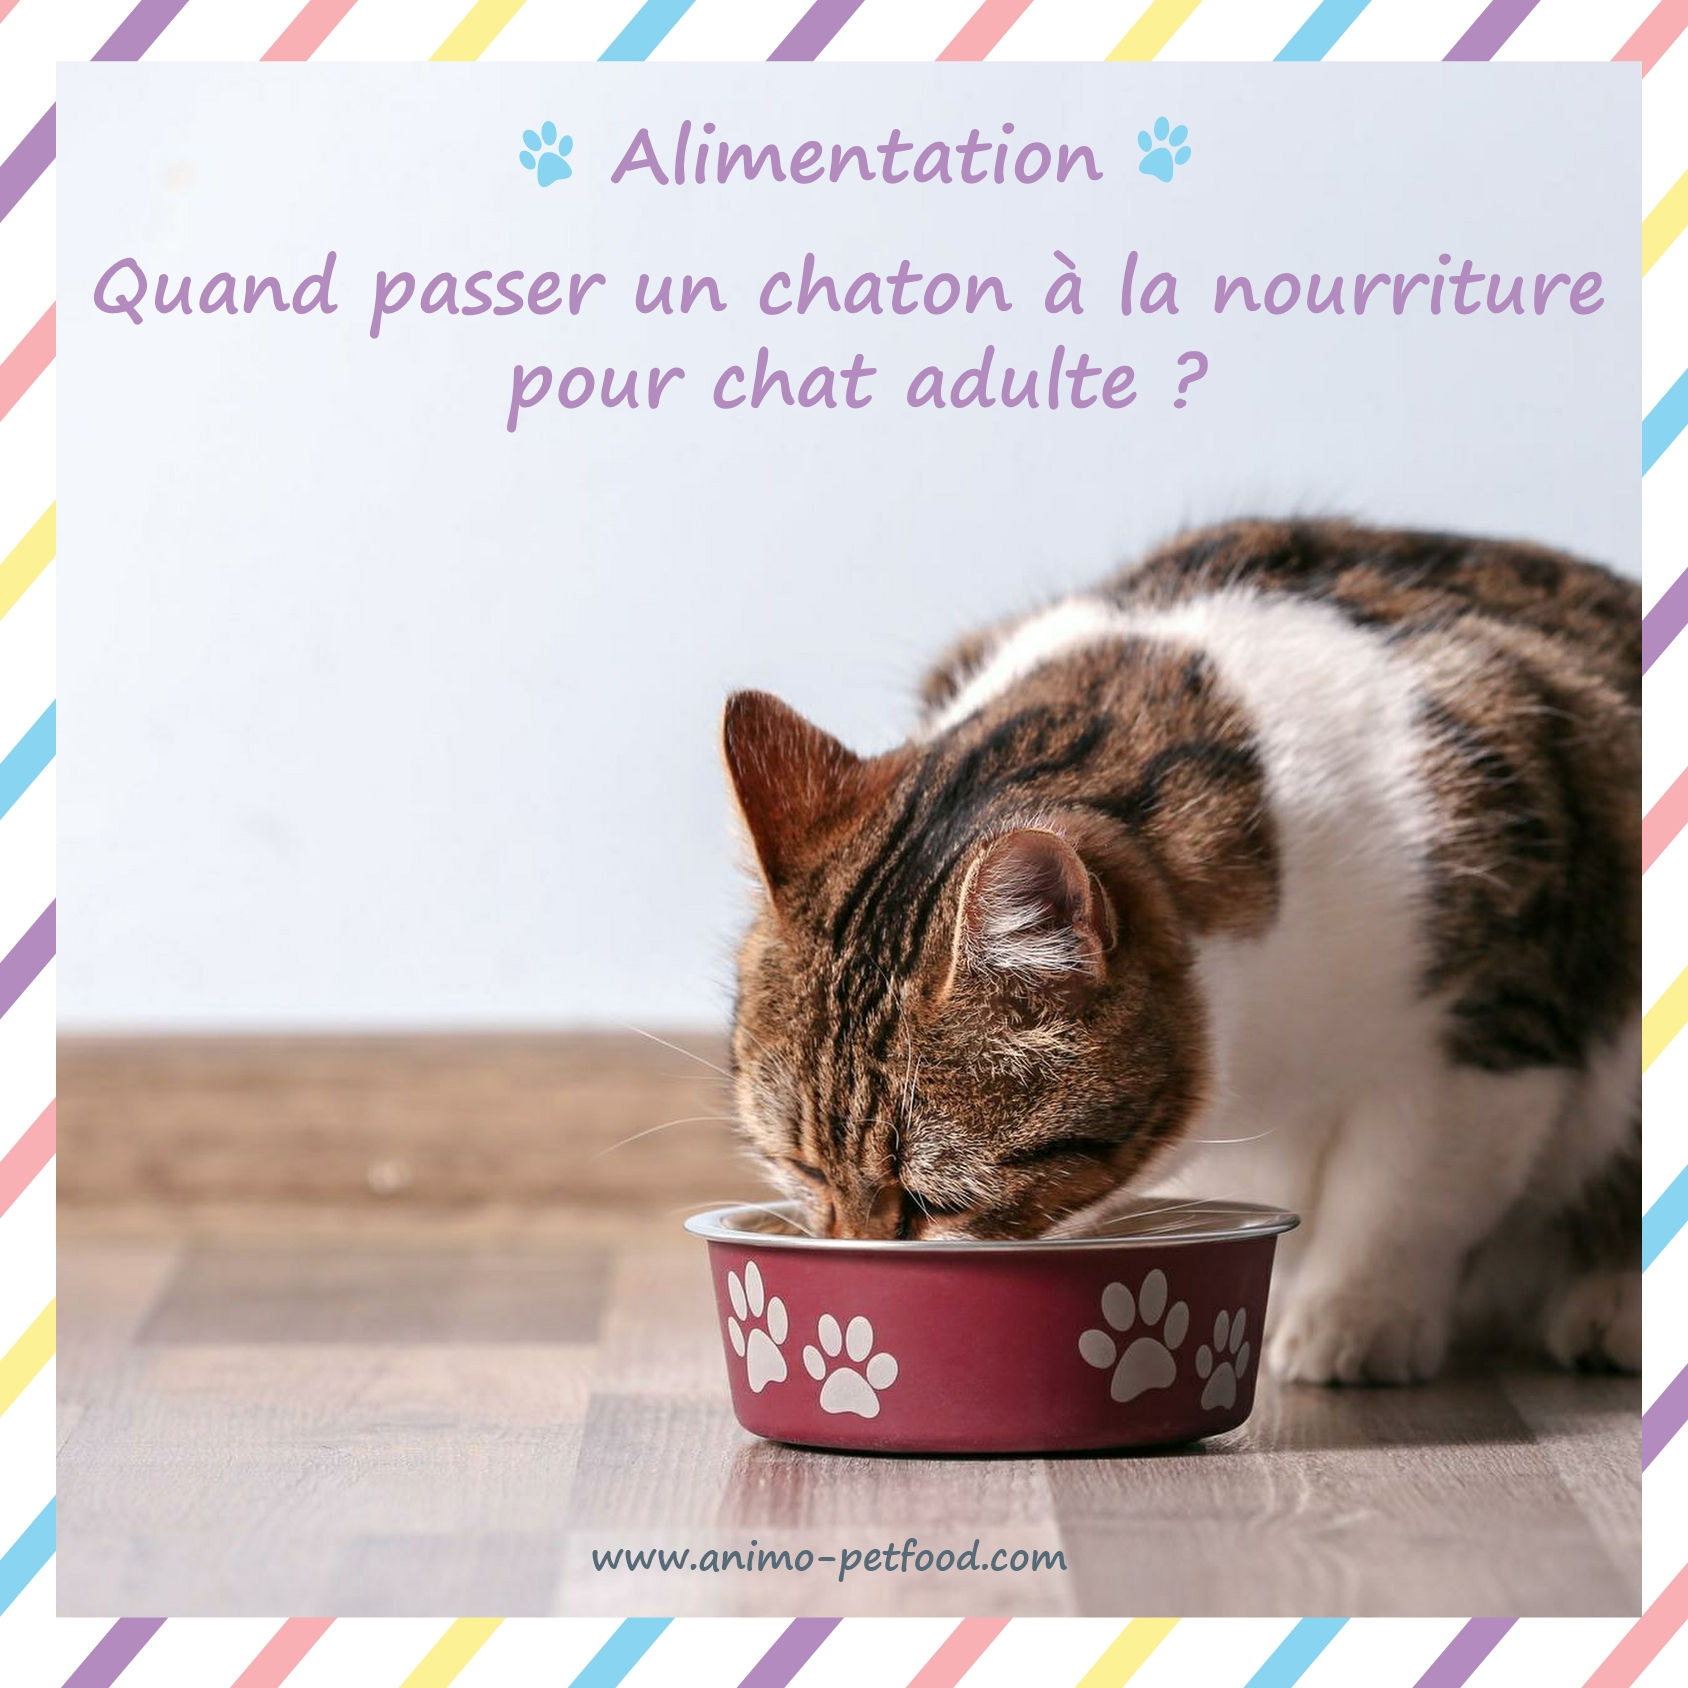 sevrage du chaton - Alimentation du chaton - Alimentation - Chats- Alimentation chat adulte